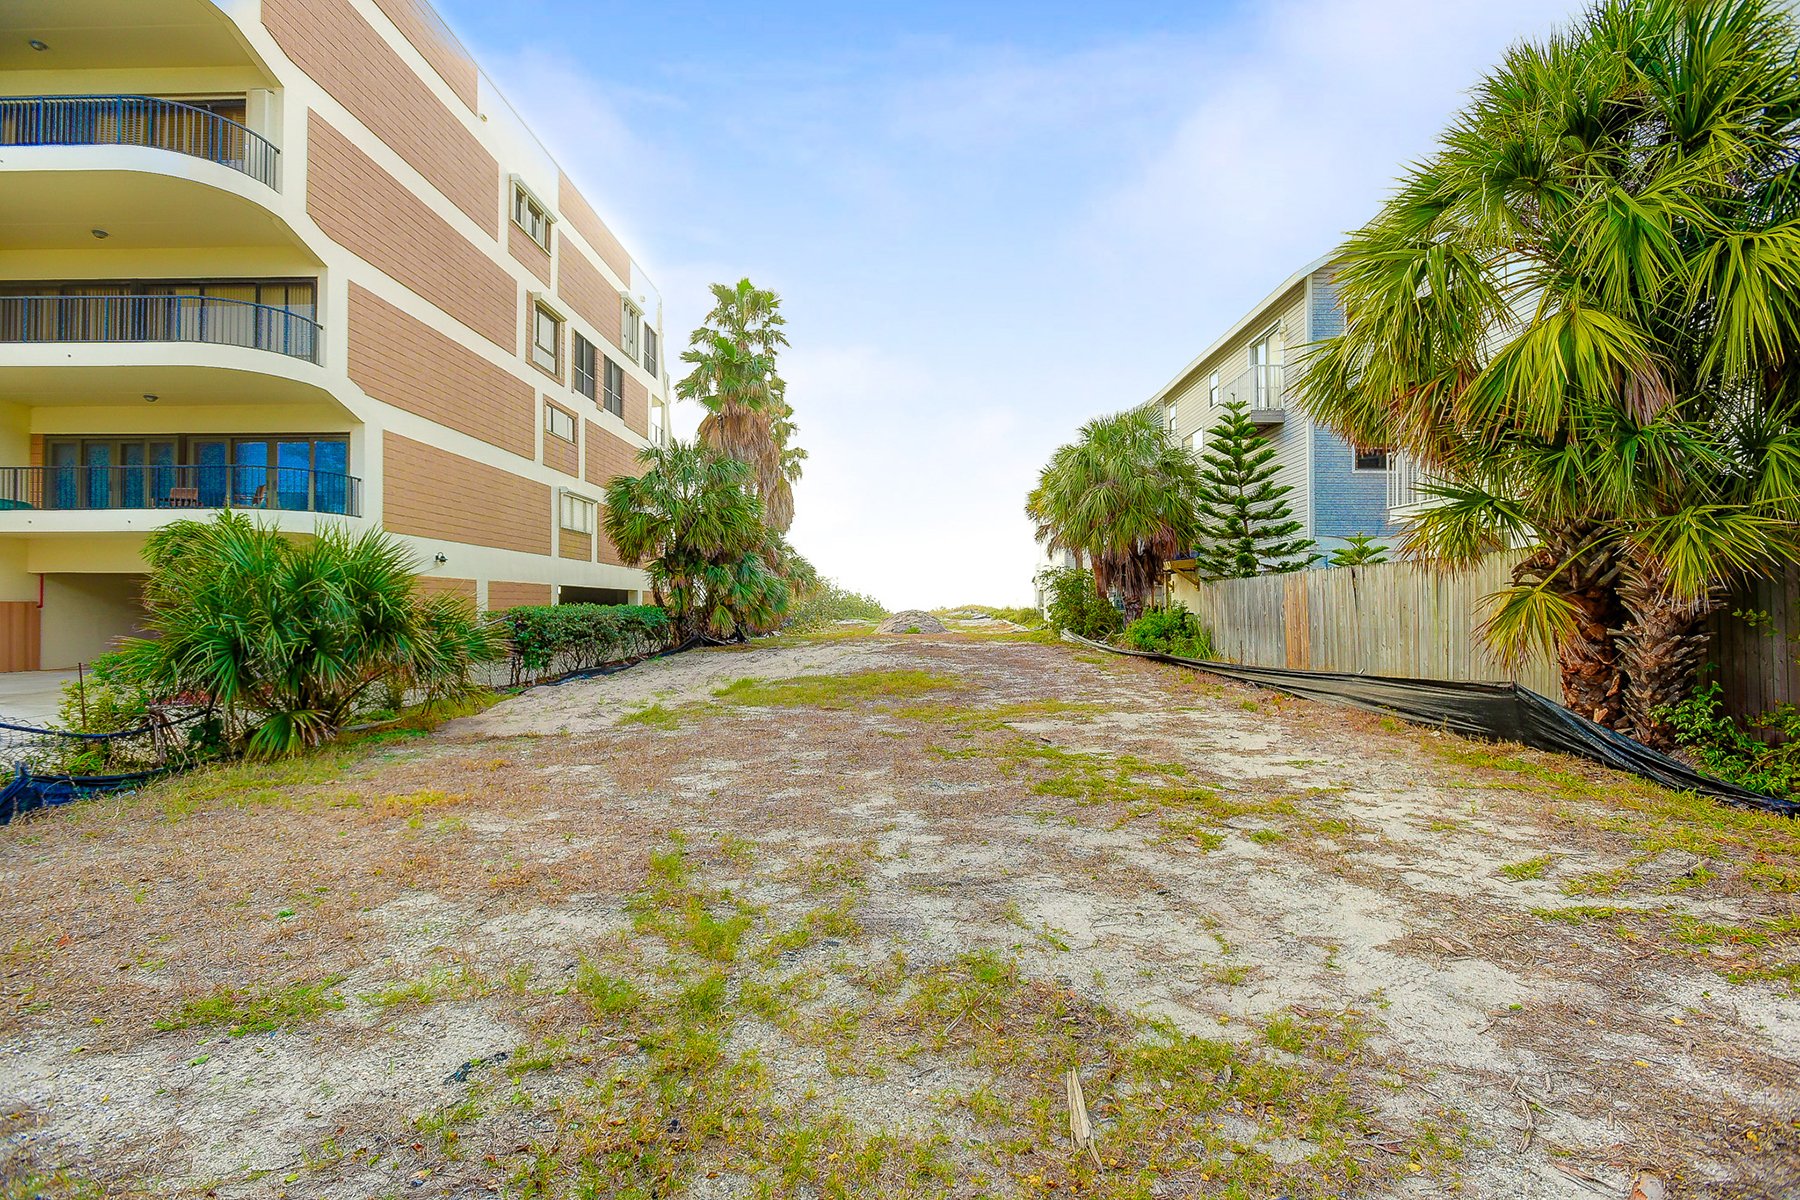 Additional photo for property listing at INDIAN SHORES 19914  Gulf Blvd 43,  Indian Shores, Florida 33785 United States